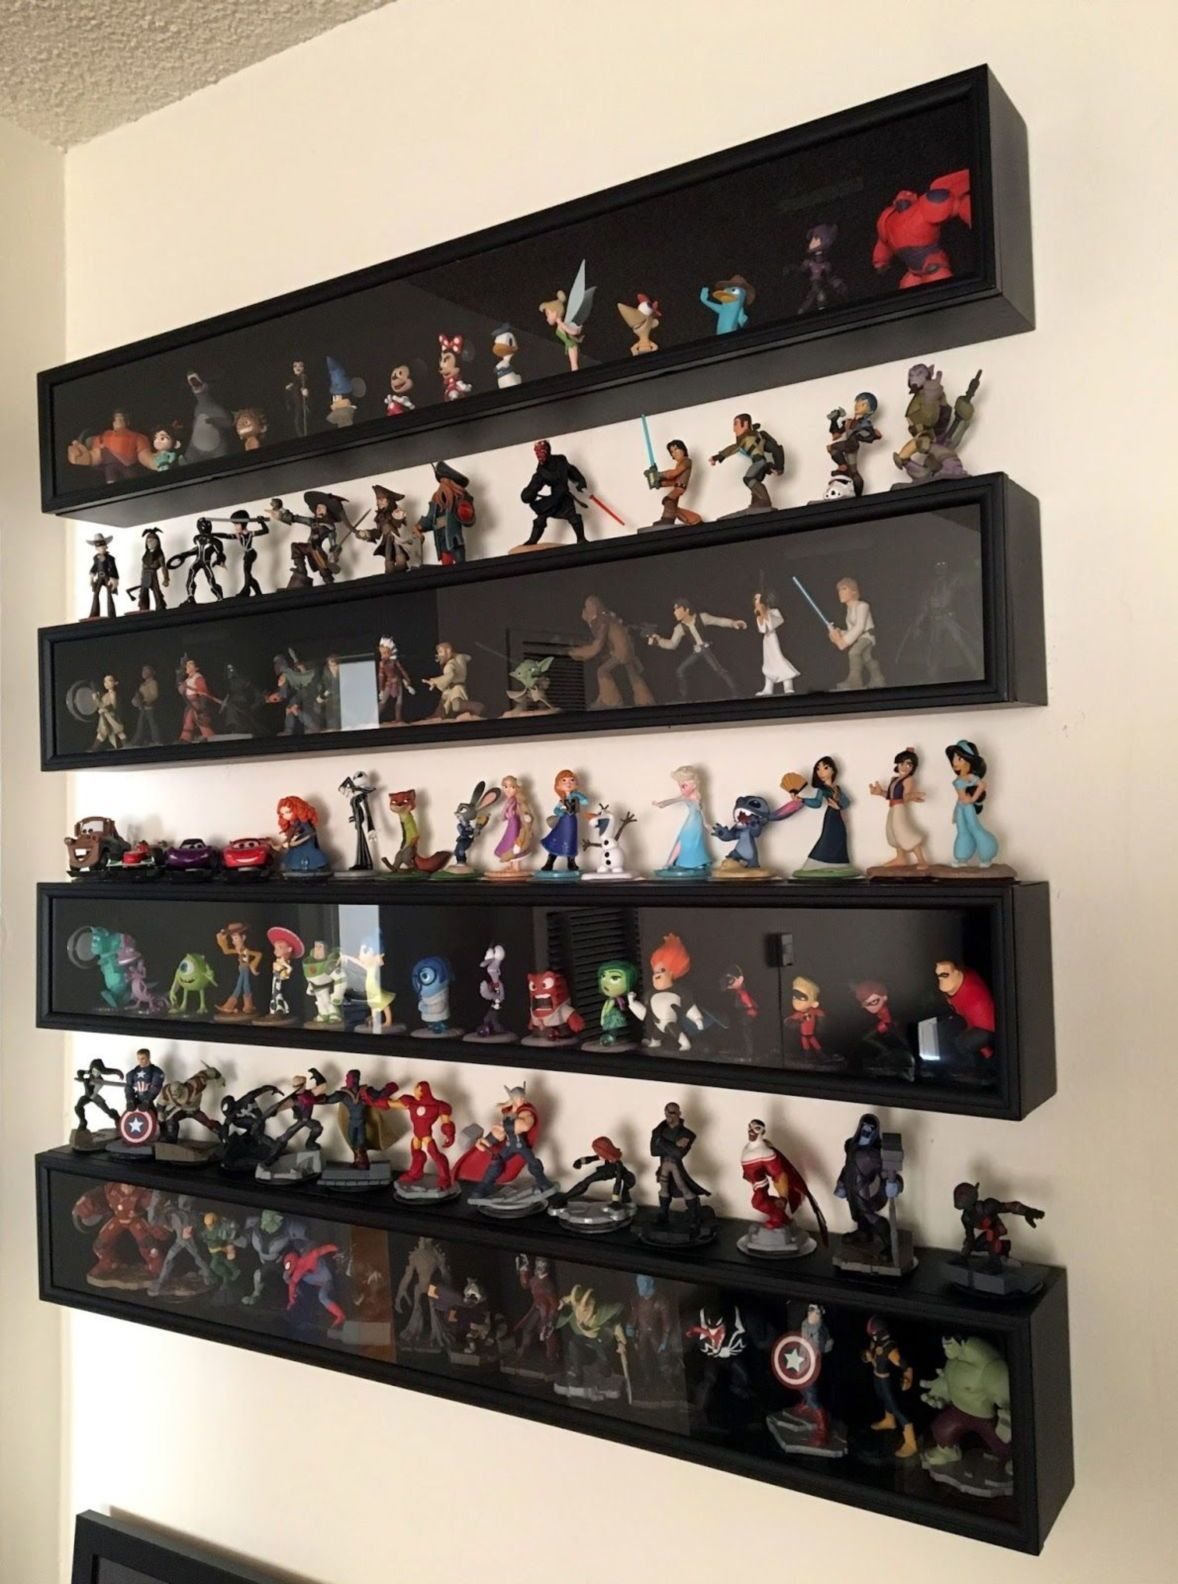 Display Case Diy How To Make Diy Display Cases Design Diy Display Case Wood Diy Display Case Shadow Box Disney Infinity Figures Diy Display Diy Shadow Box